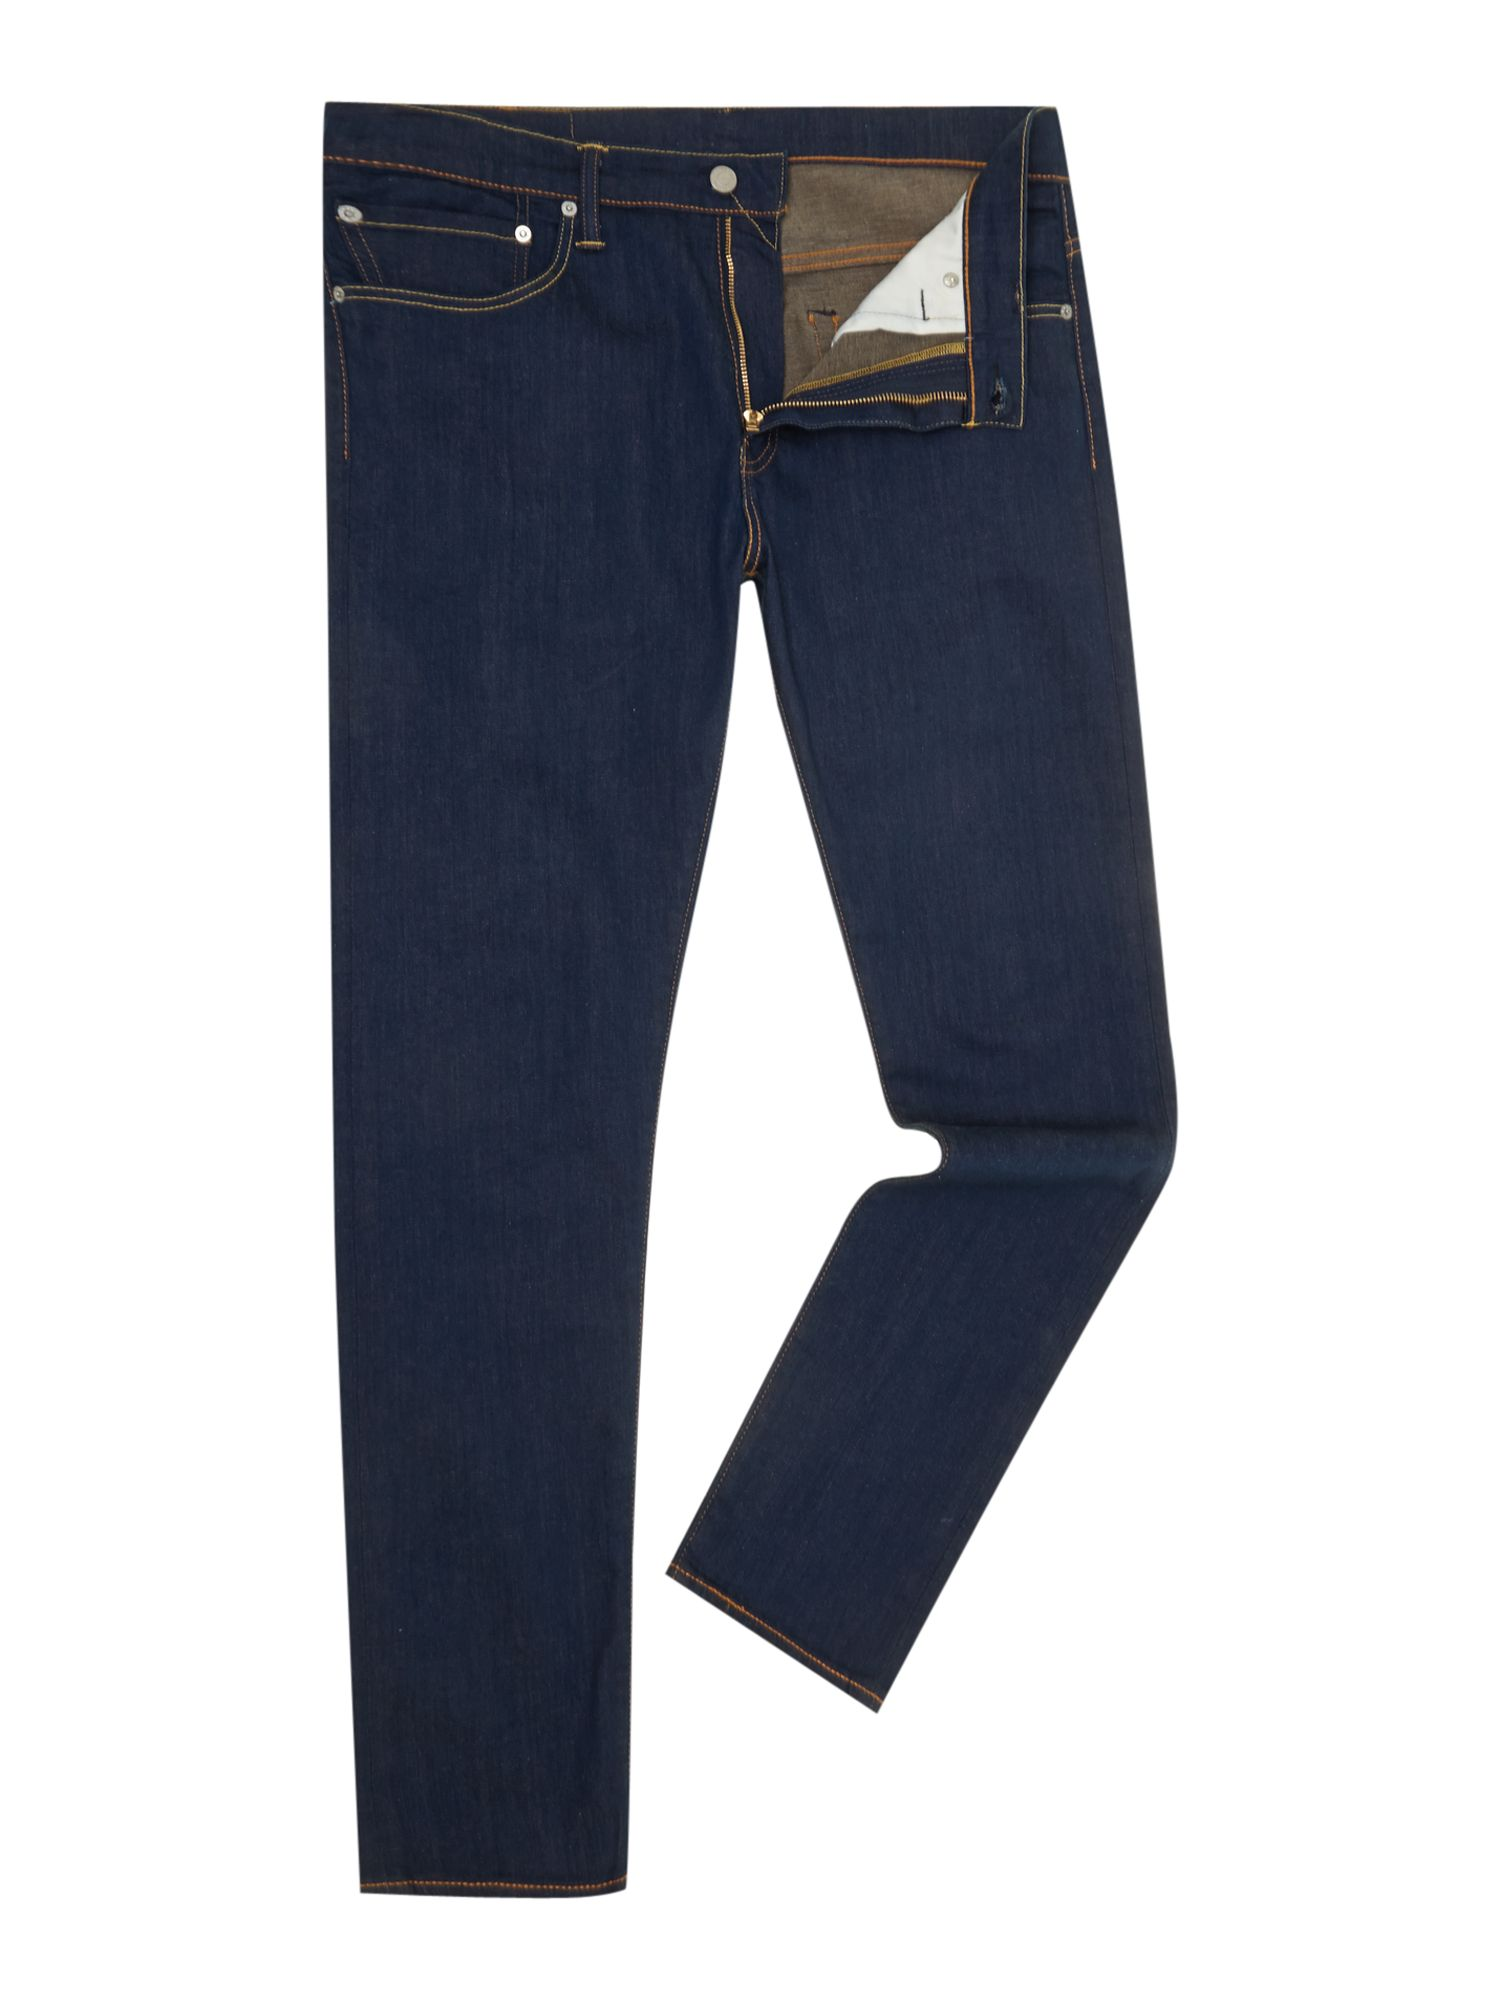 520 skinnt taper fit jean